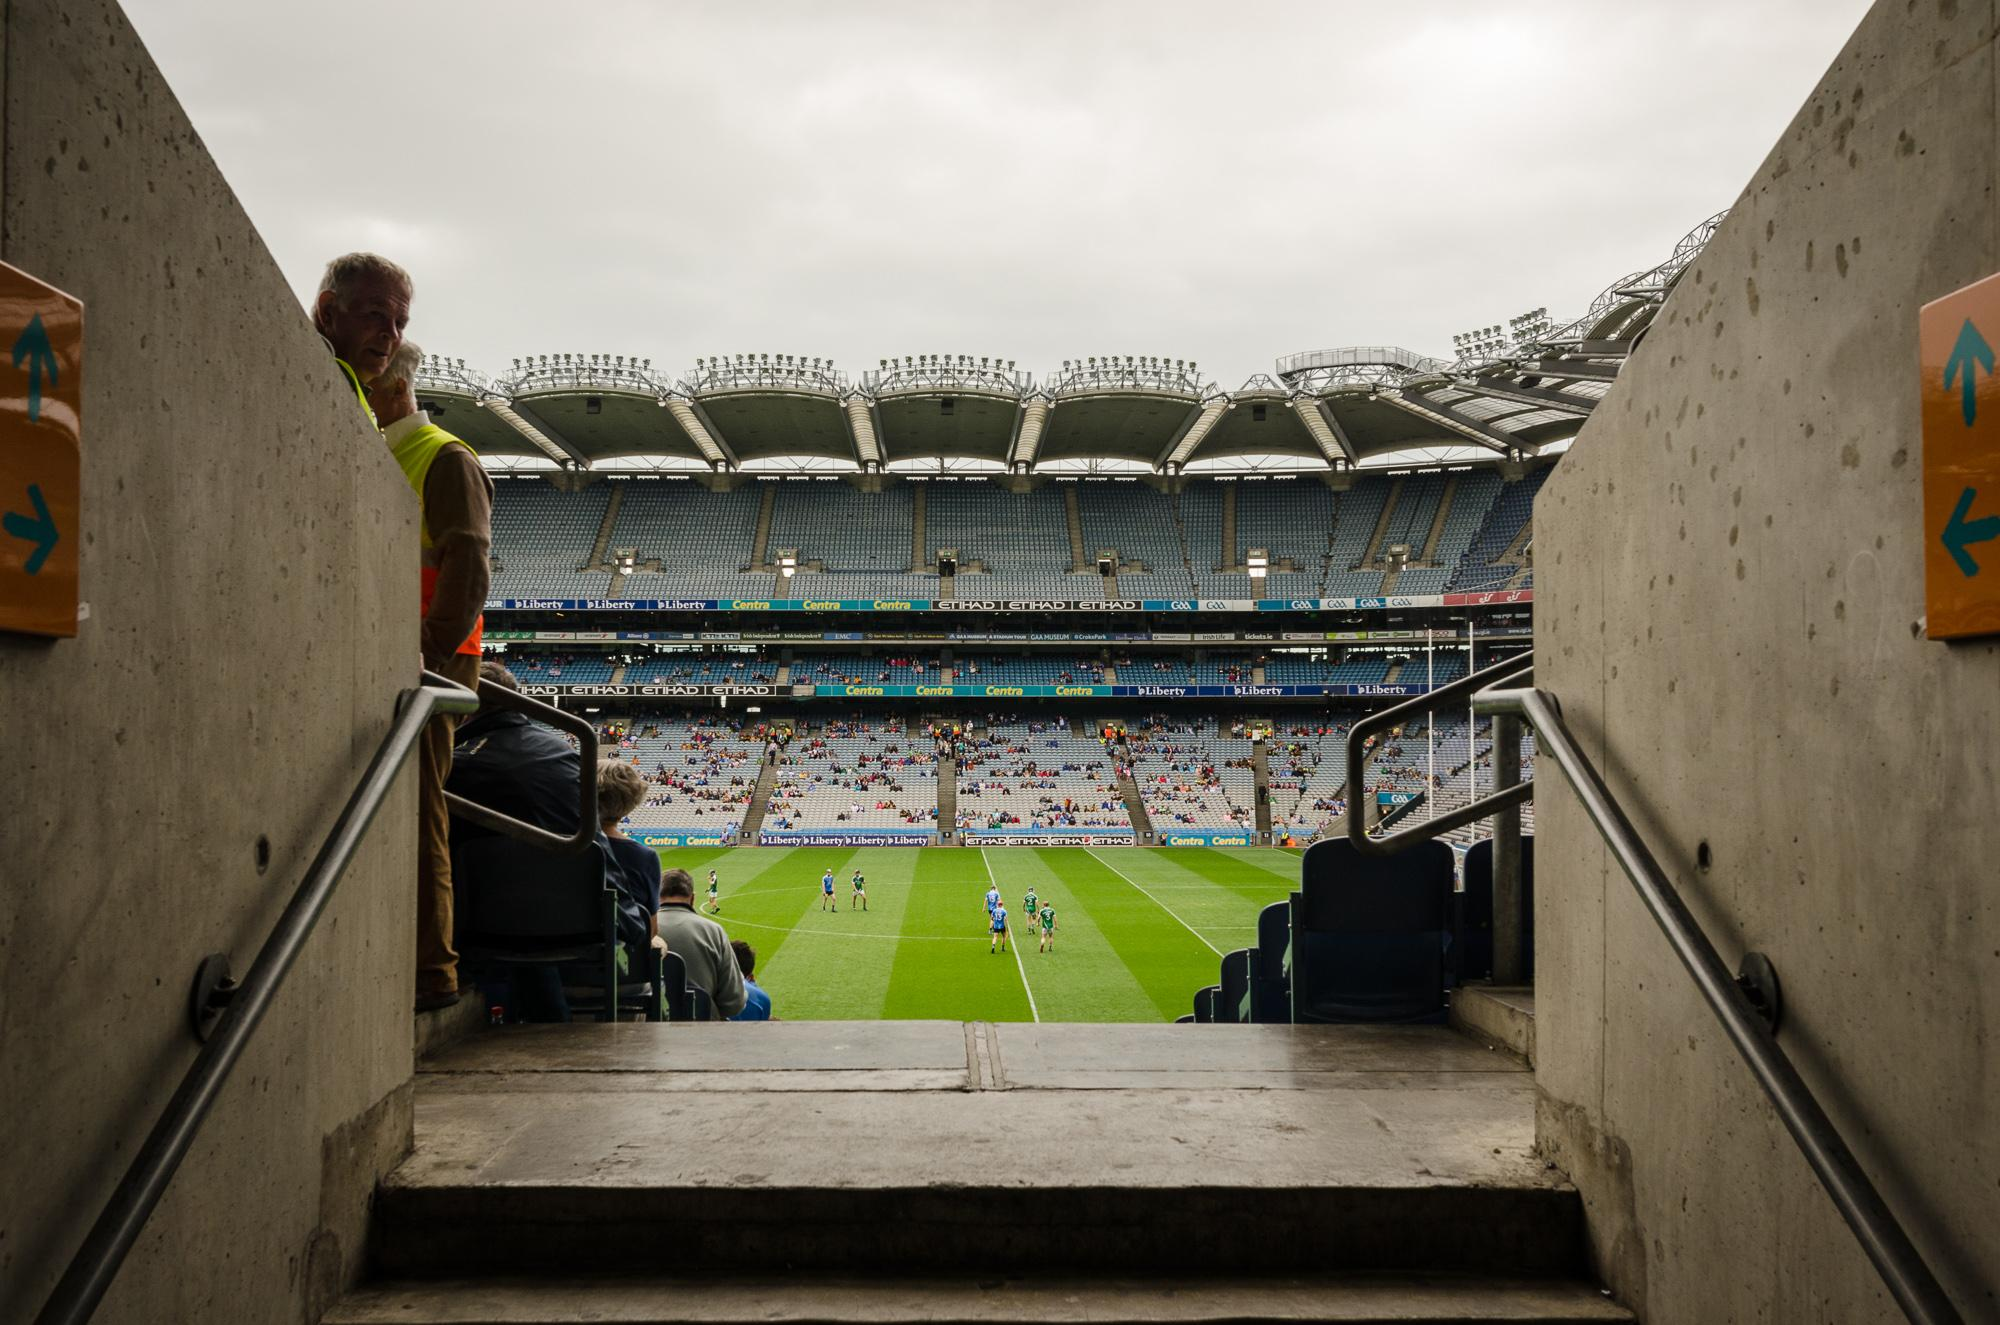 Croke-Park-Ongoing-Match